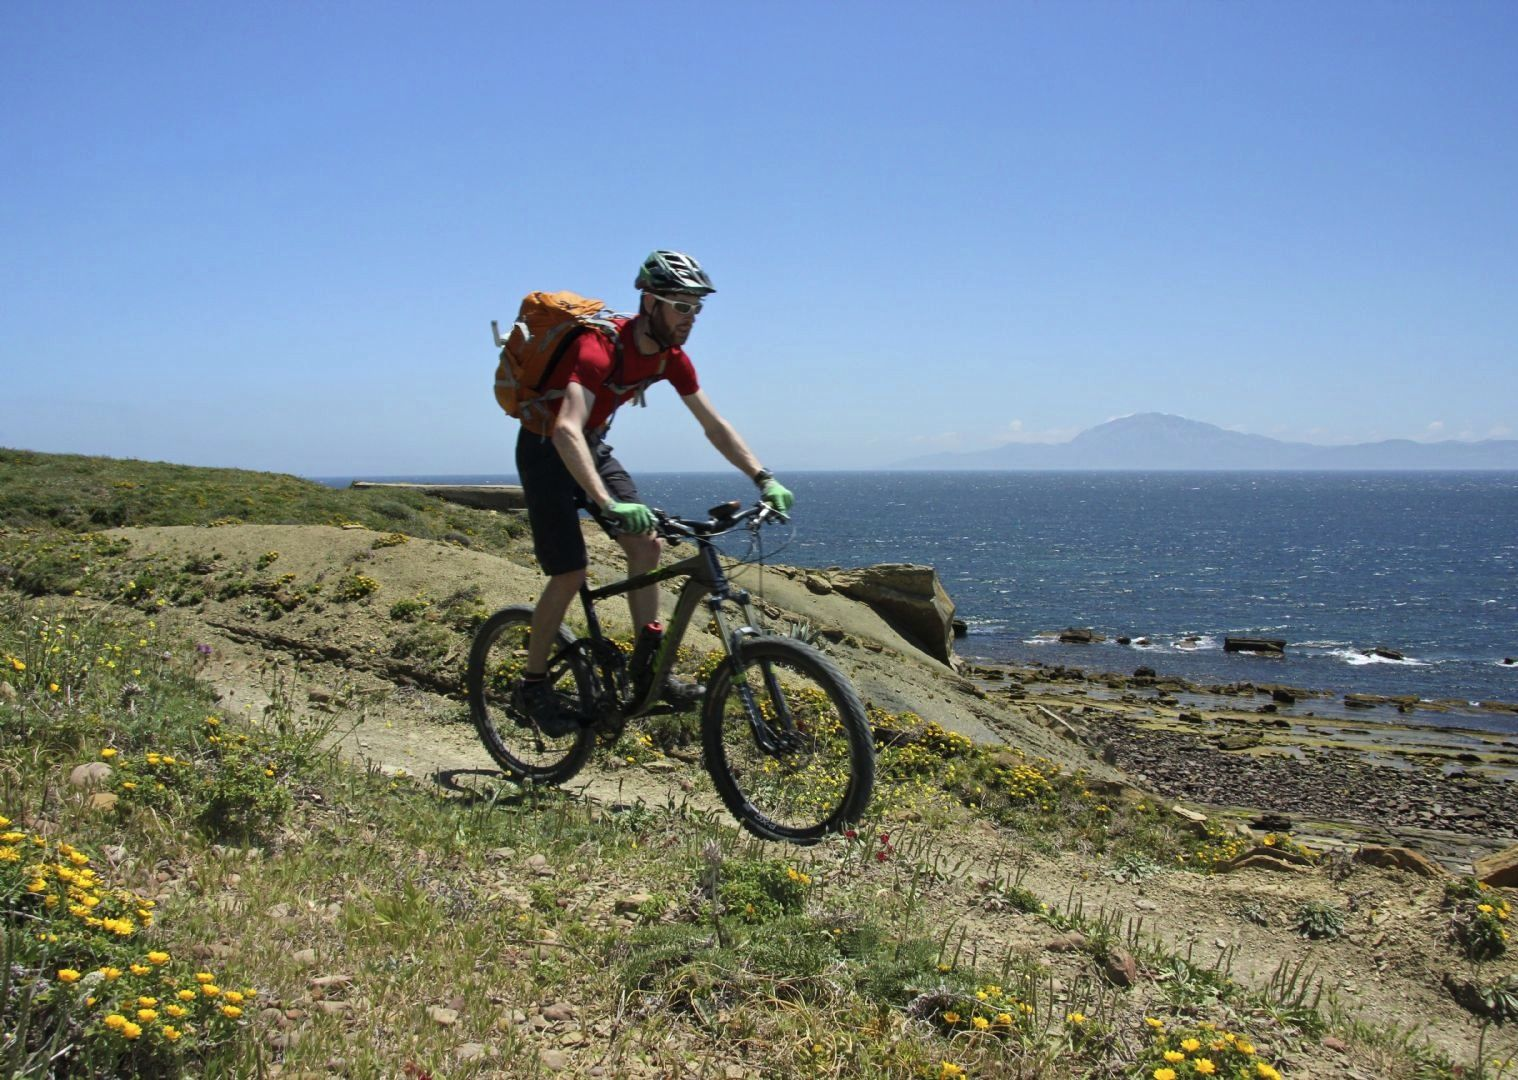 _Holiday.294.7671_full.jpg - Spain - Trans Andaluz - Guided Mountain Bike Holiday - Mountain Biking